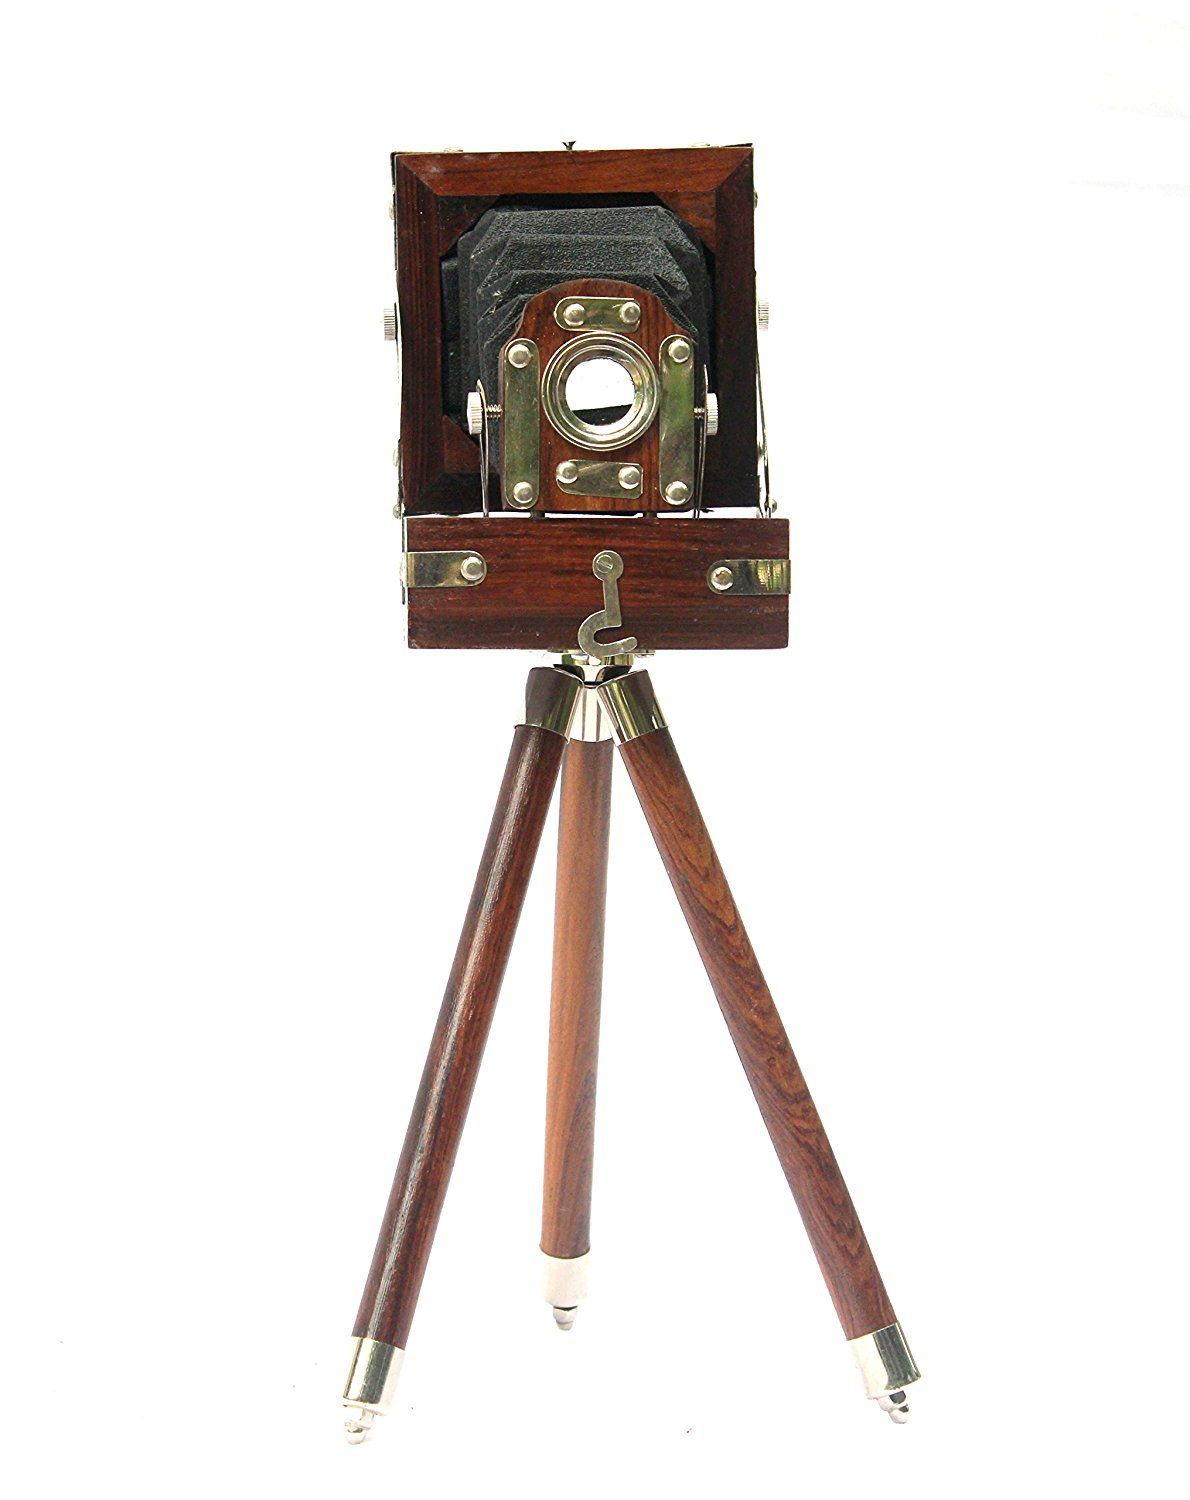 New Antique Vintage Look Film Camera Wooden Tripod Collectible Decor Small Brown